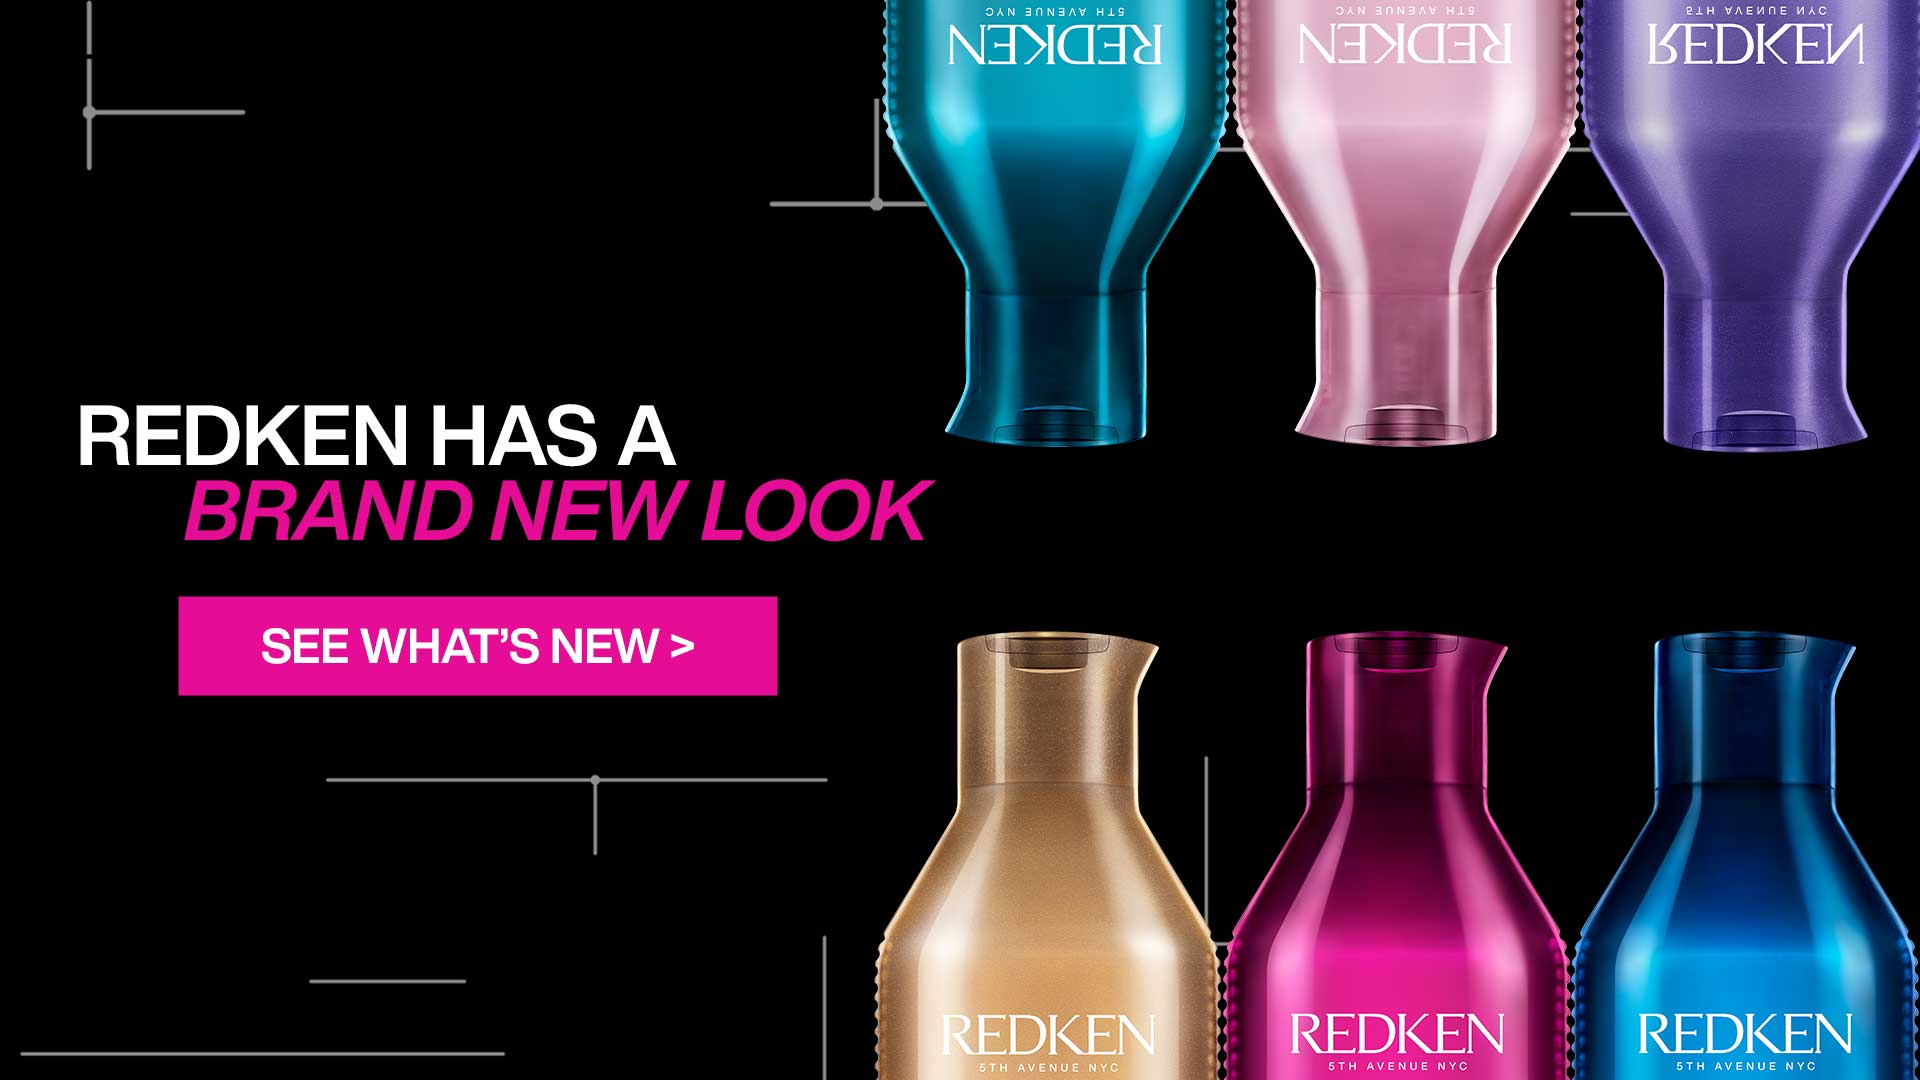 Redken Has Brand New Look